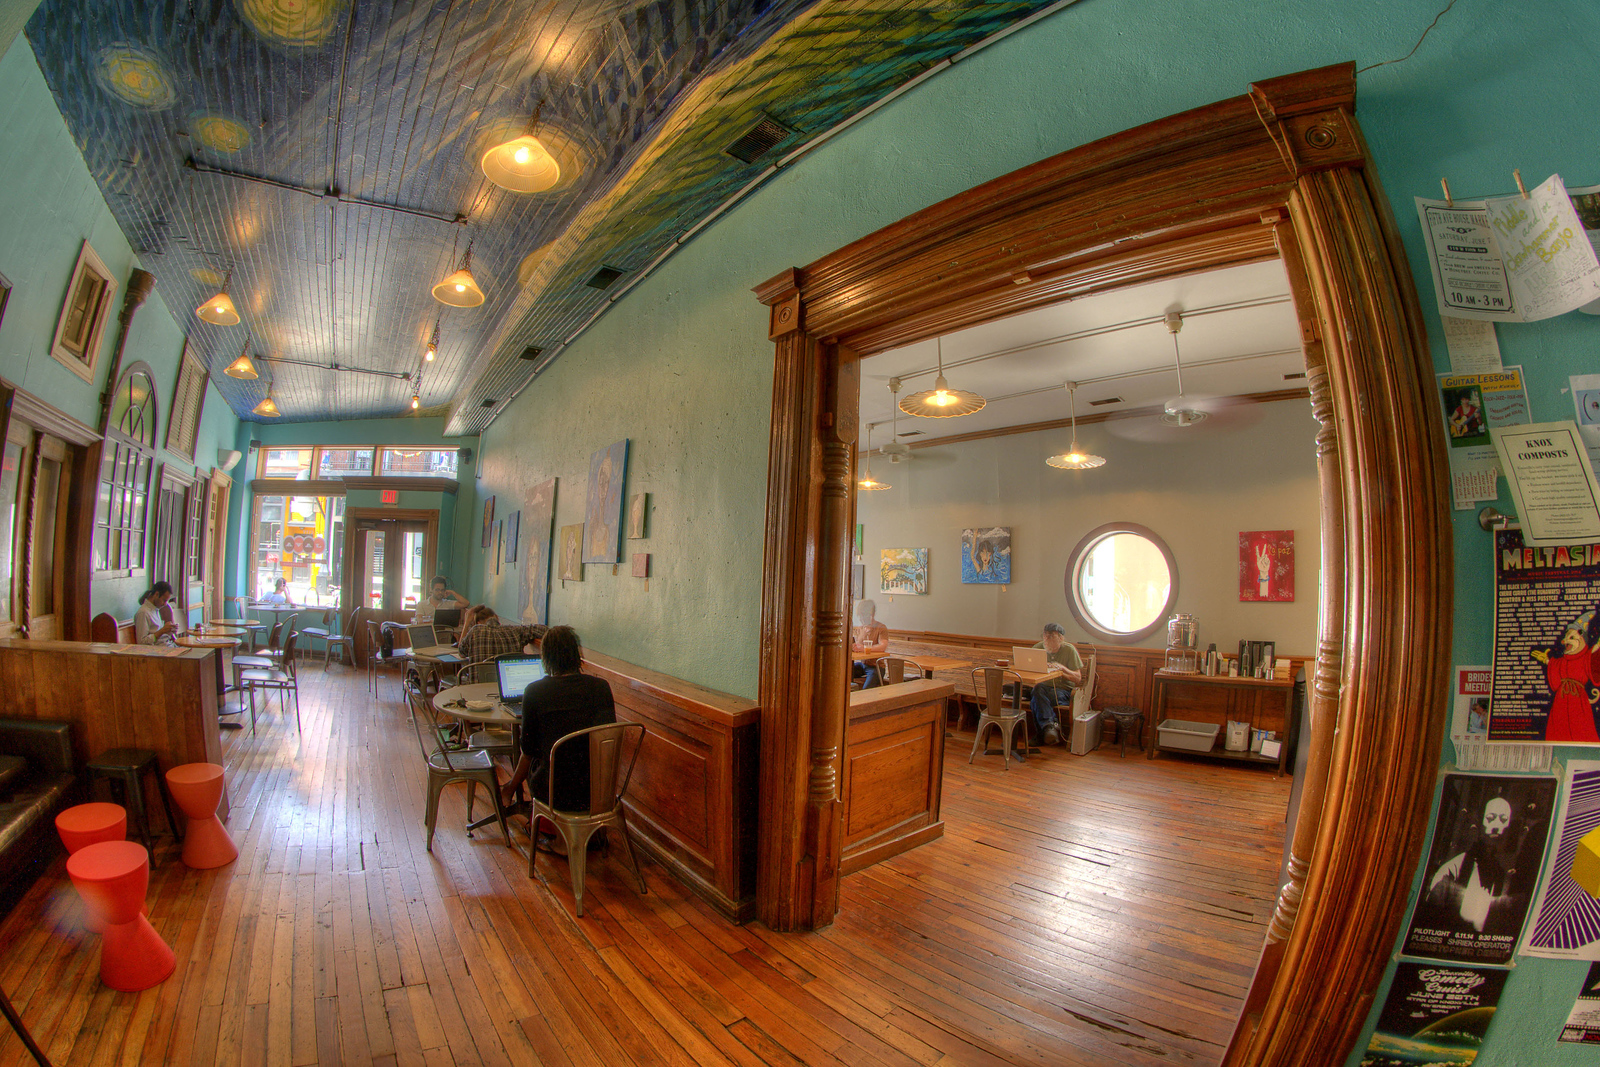 Beautiful decor and a painted ceiling at Old City Java, located in the Old City neighborhood, in Knoxville, TN on Saturday, June 7, 2014. Copyright 2014 Jason Barnette